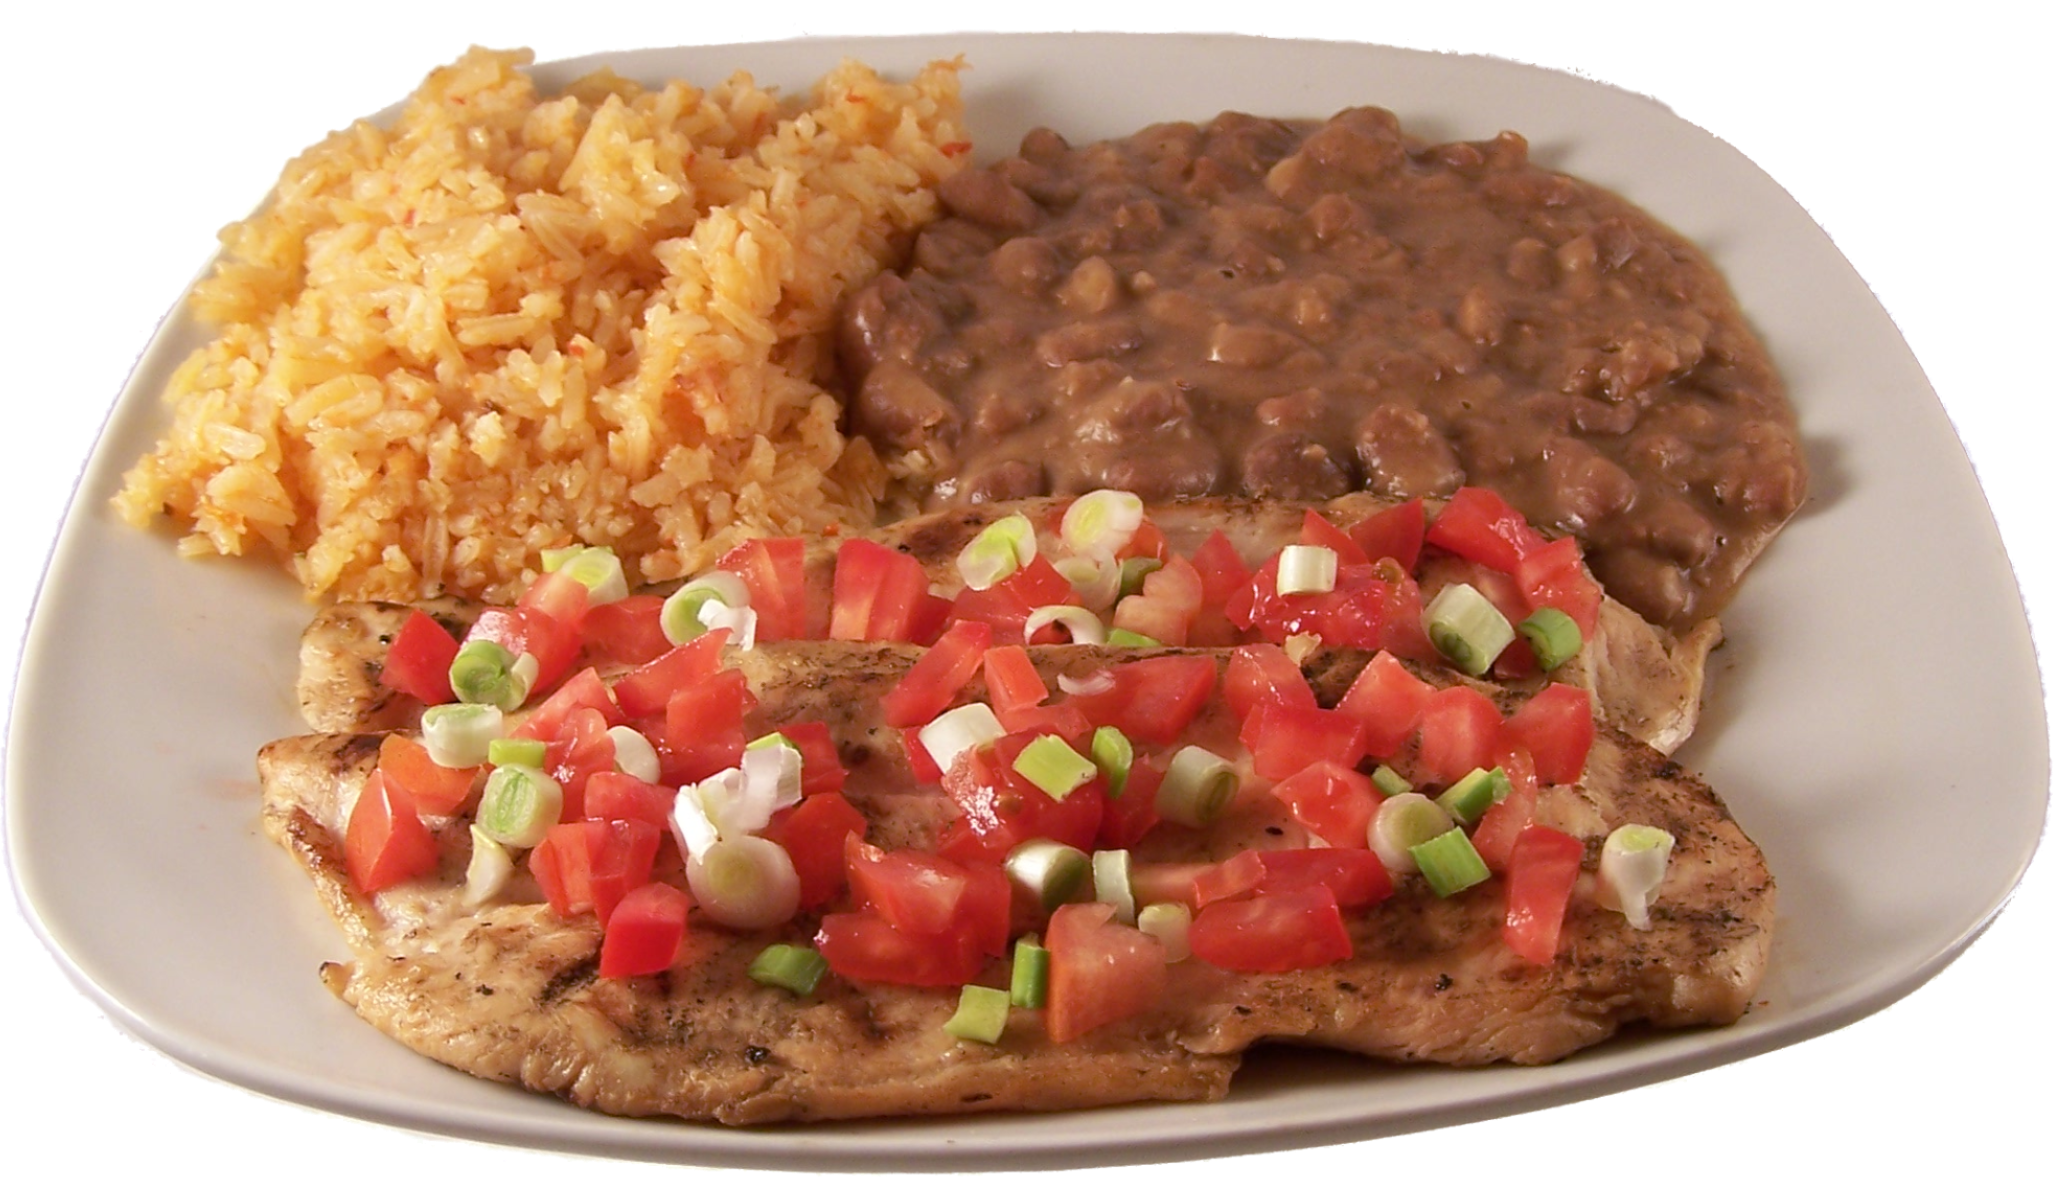 Tequila Lime Chicken  Grilled boneless chicken breast marinated in lime and tequila flavors, topped with fresh pico de gallo. $18.99